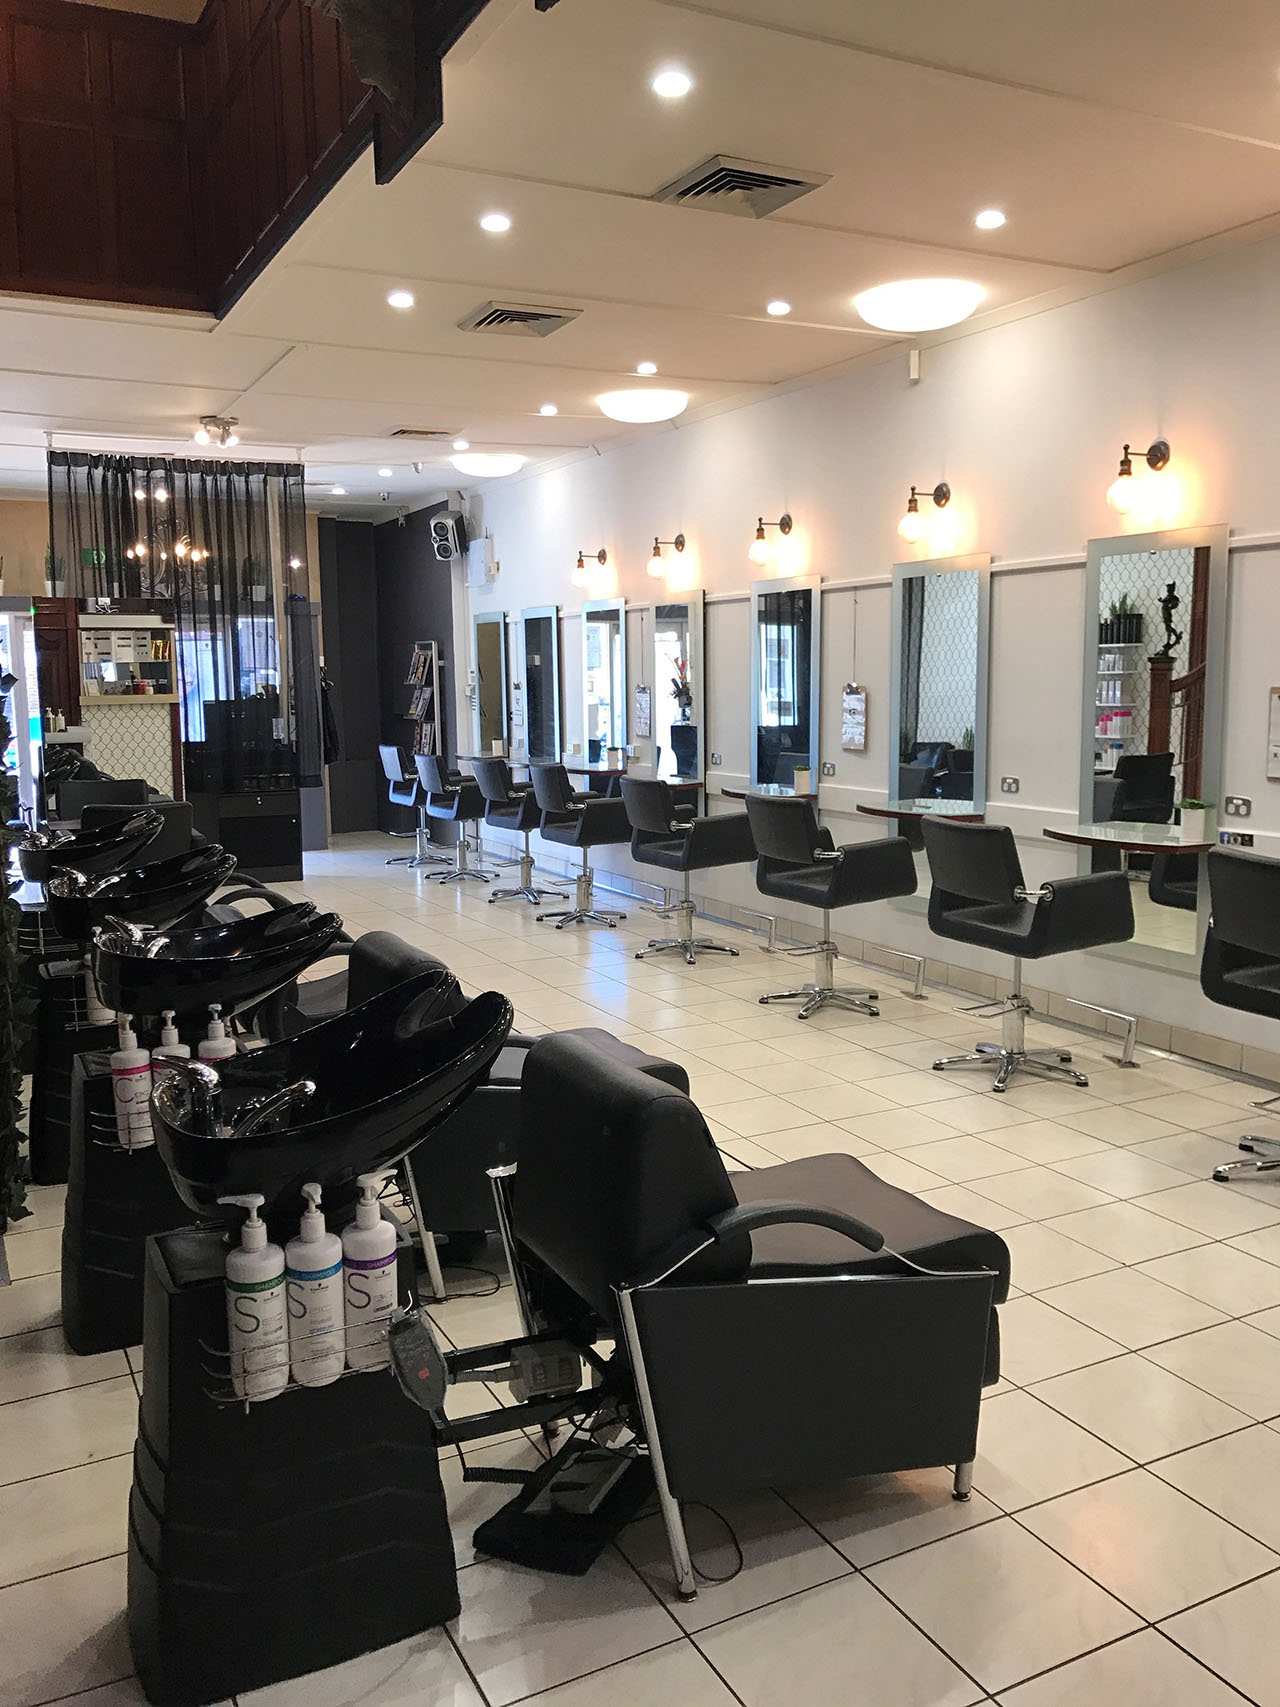 Salon Interior-Hair-Salon Hamilton-Kokum Hair Skind and Body-02 4961 2822